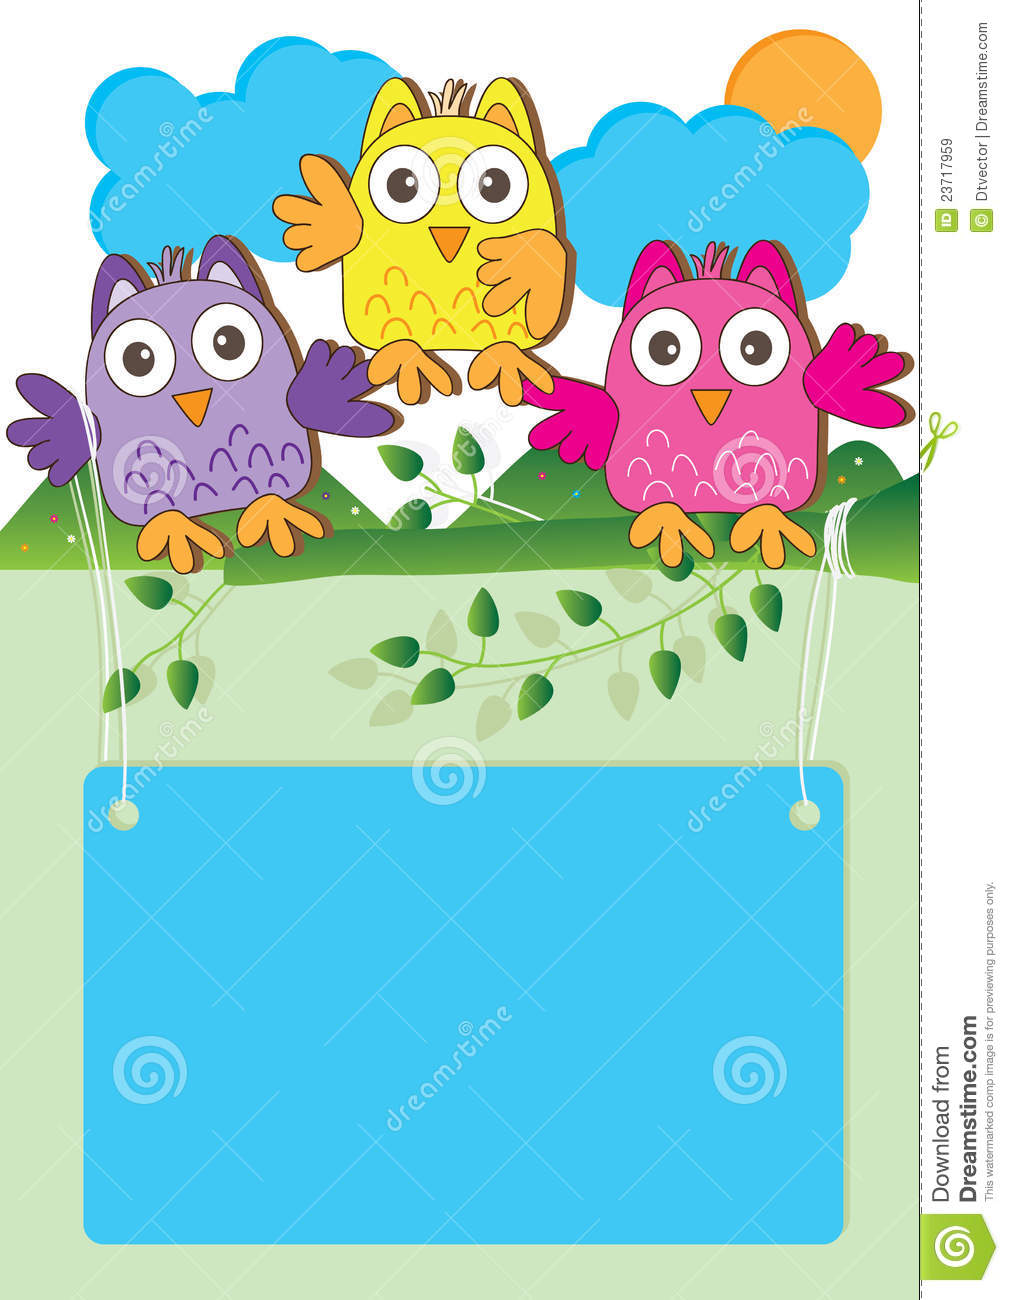 Happy Owl Introduction Eps Royalty Free Stock Images